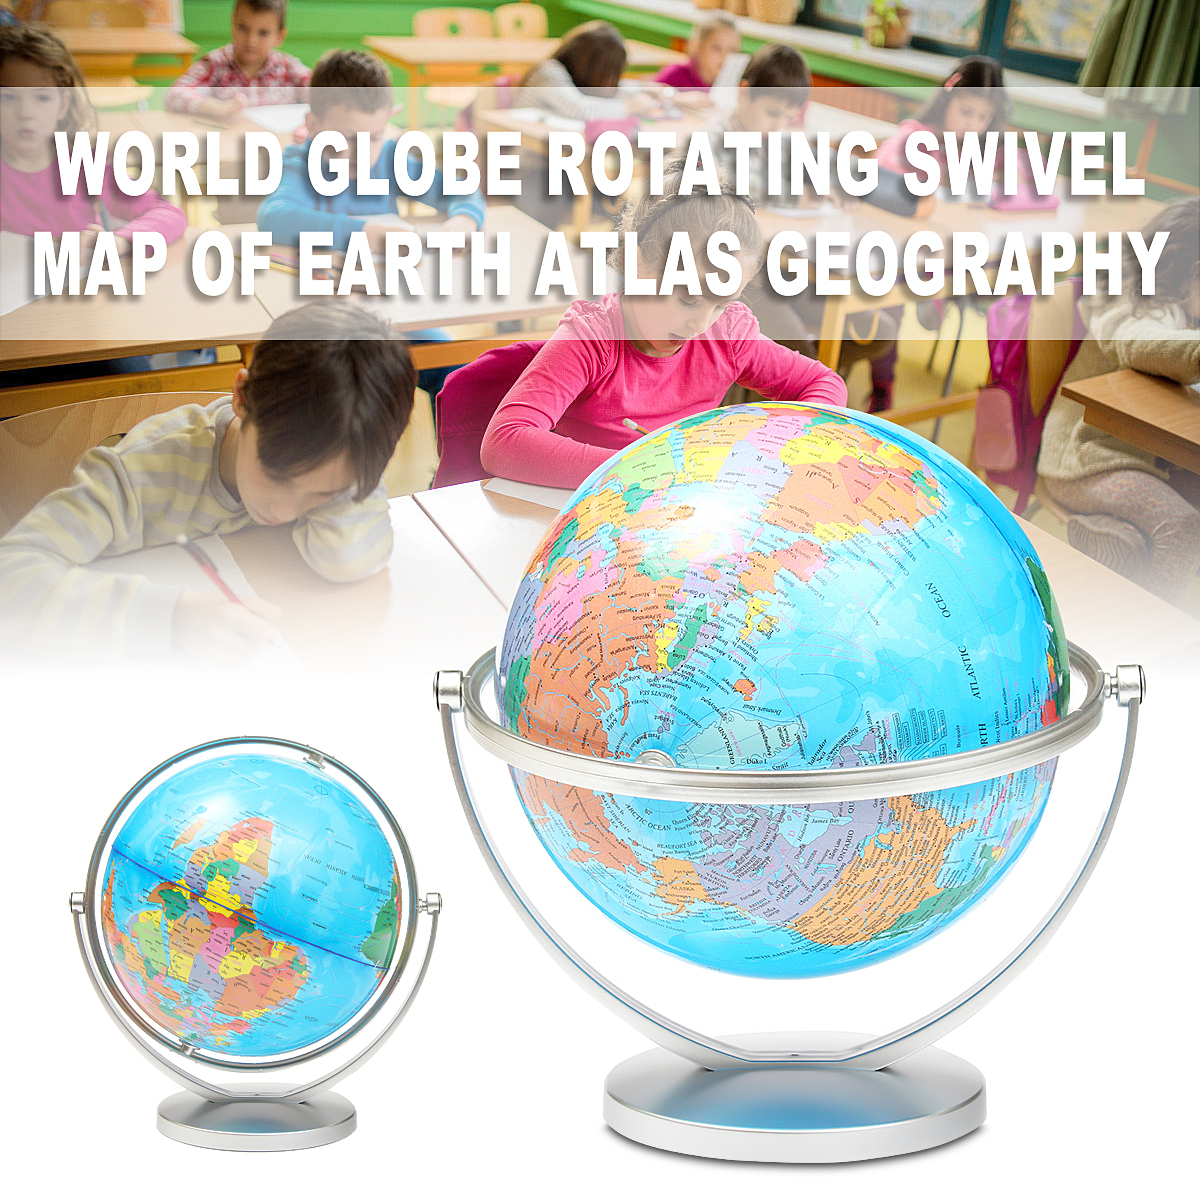 20cm World Map Terrestrial Globe Rotating Map of Earth Birthday Christmas Gift Home Office Decor Geography Educational Tool 5 set lot asy 3d 1 999s ac 220v power on delay timer digital time relay 1 999 second 220vac 8 pin with pf083a socket base